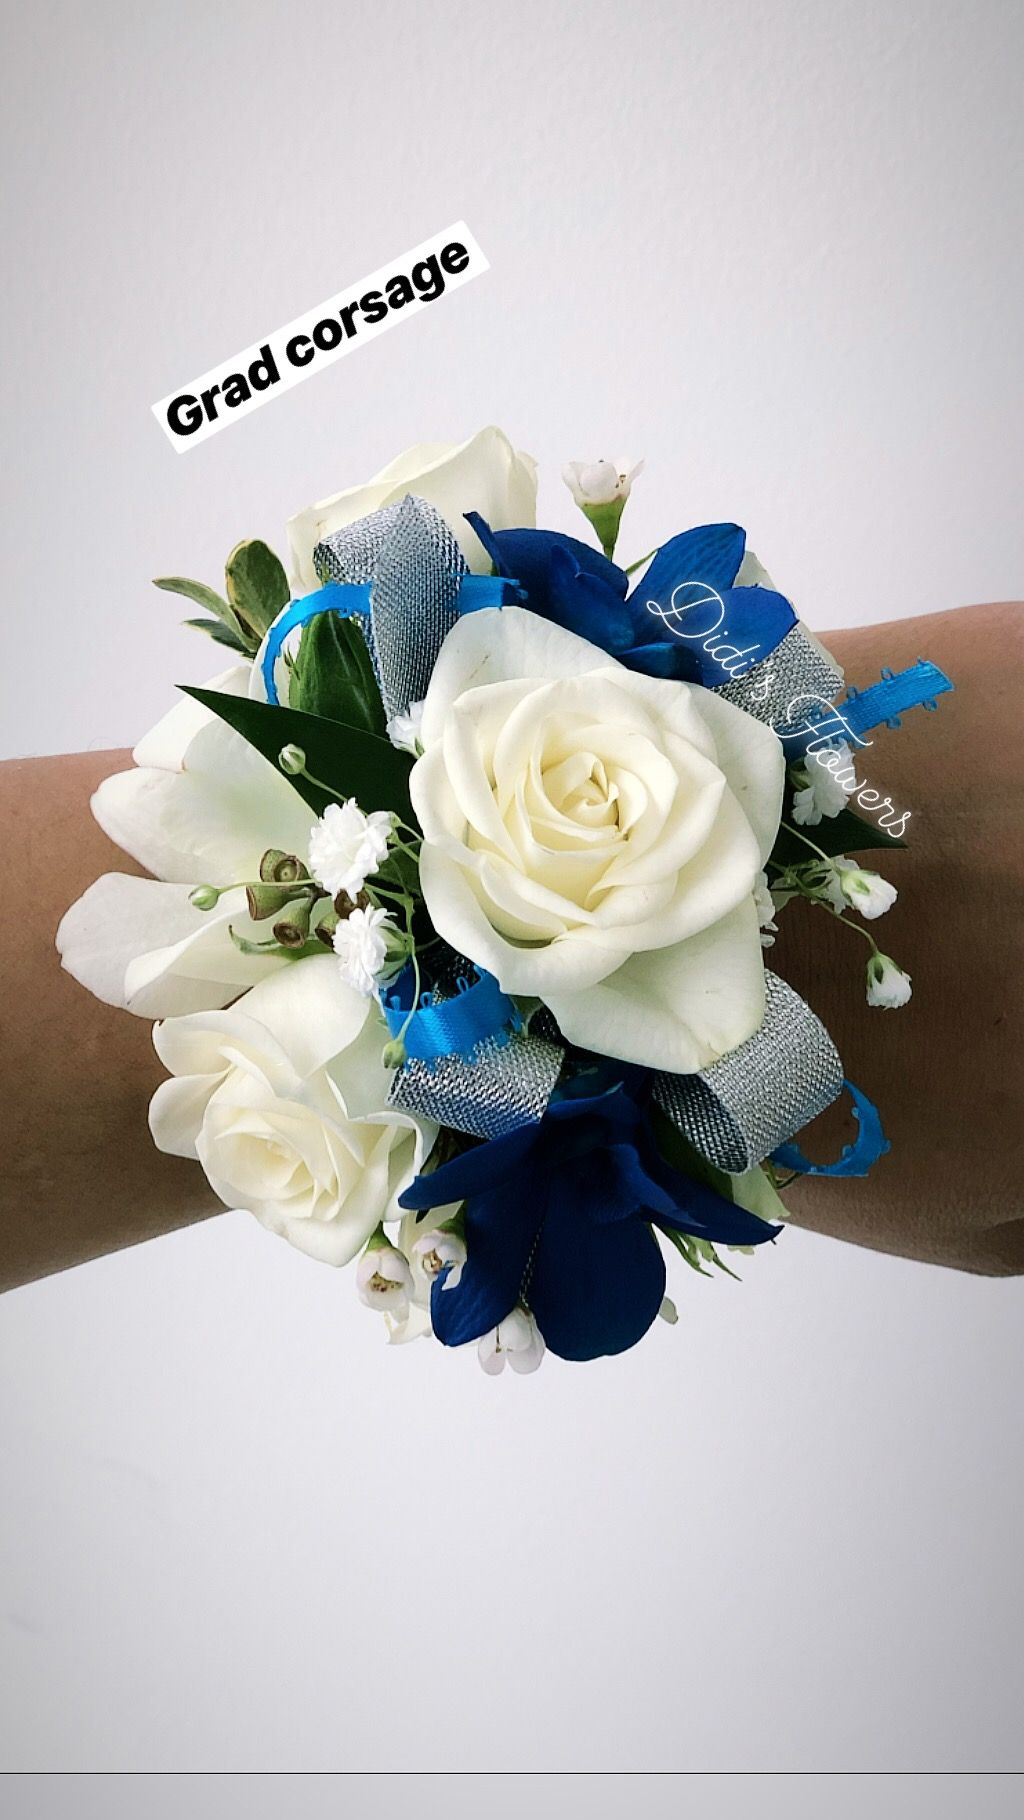 A beautiful blue and white corsage perfect for any prom